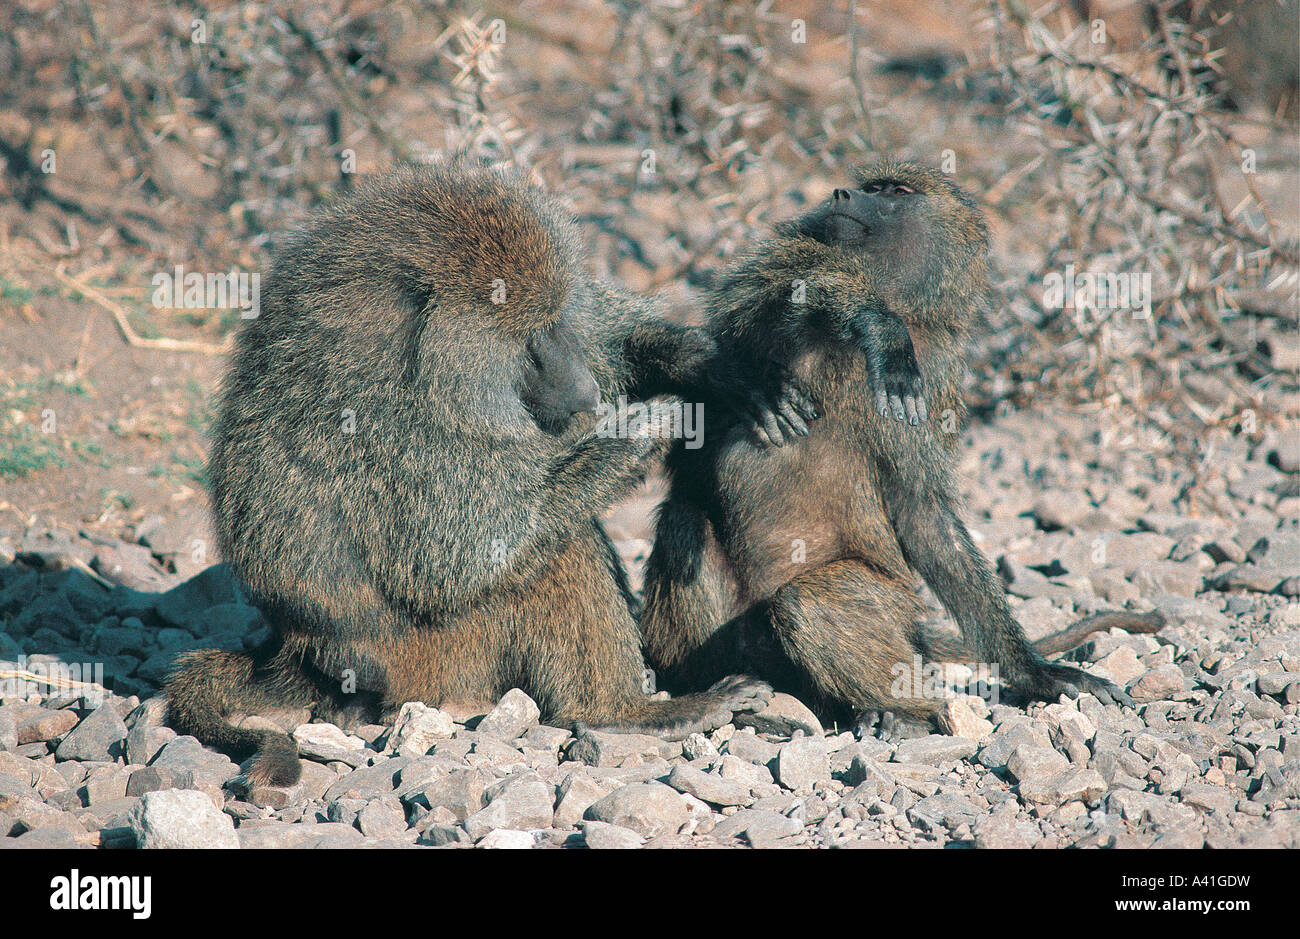 Male Olive Baboon grooms a female in Serengeti National Park Tanzania East Africa - Stock Image